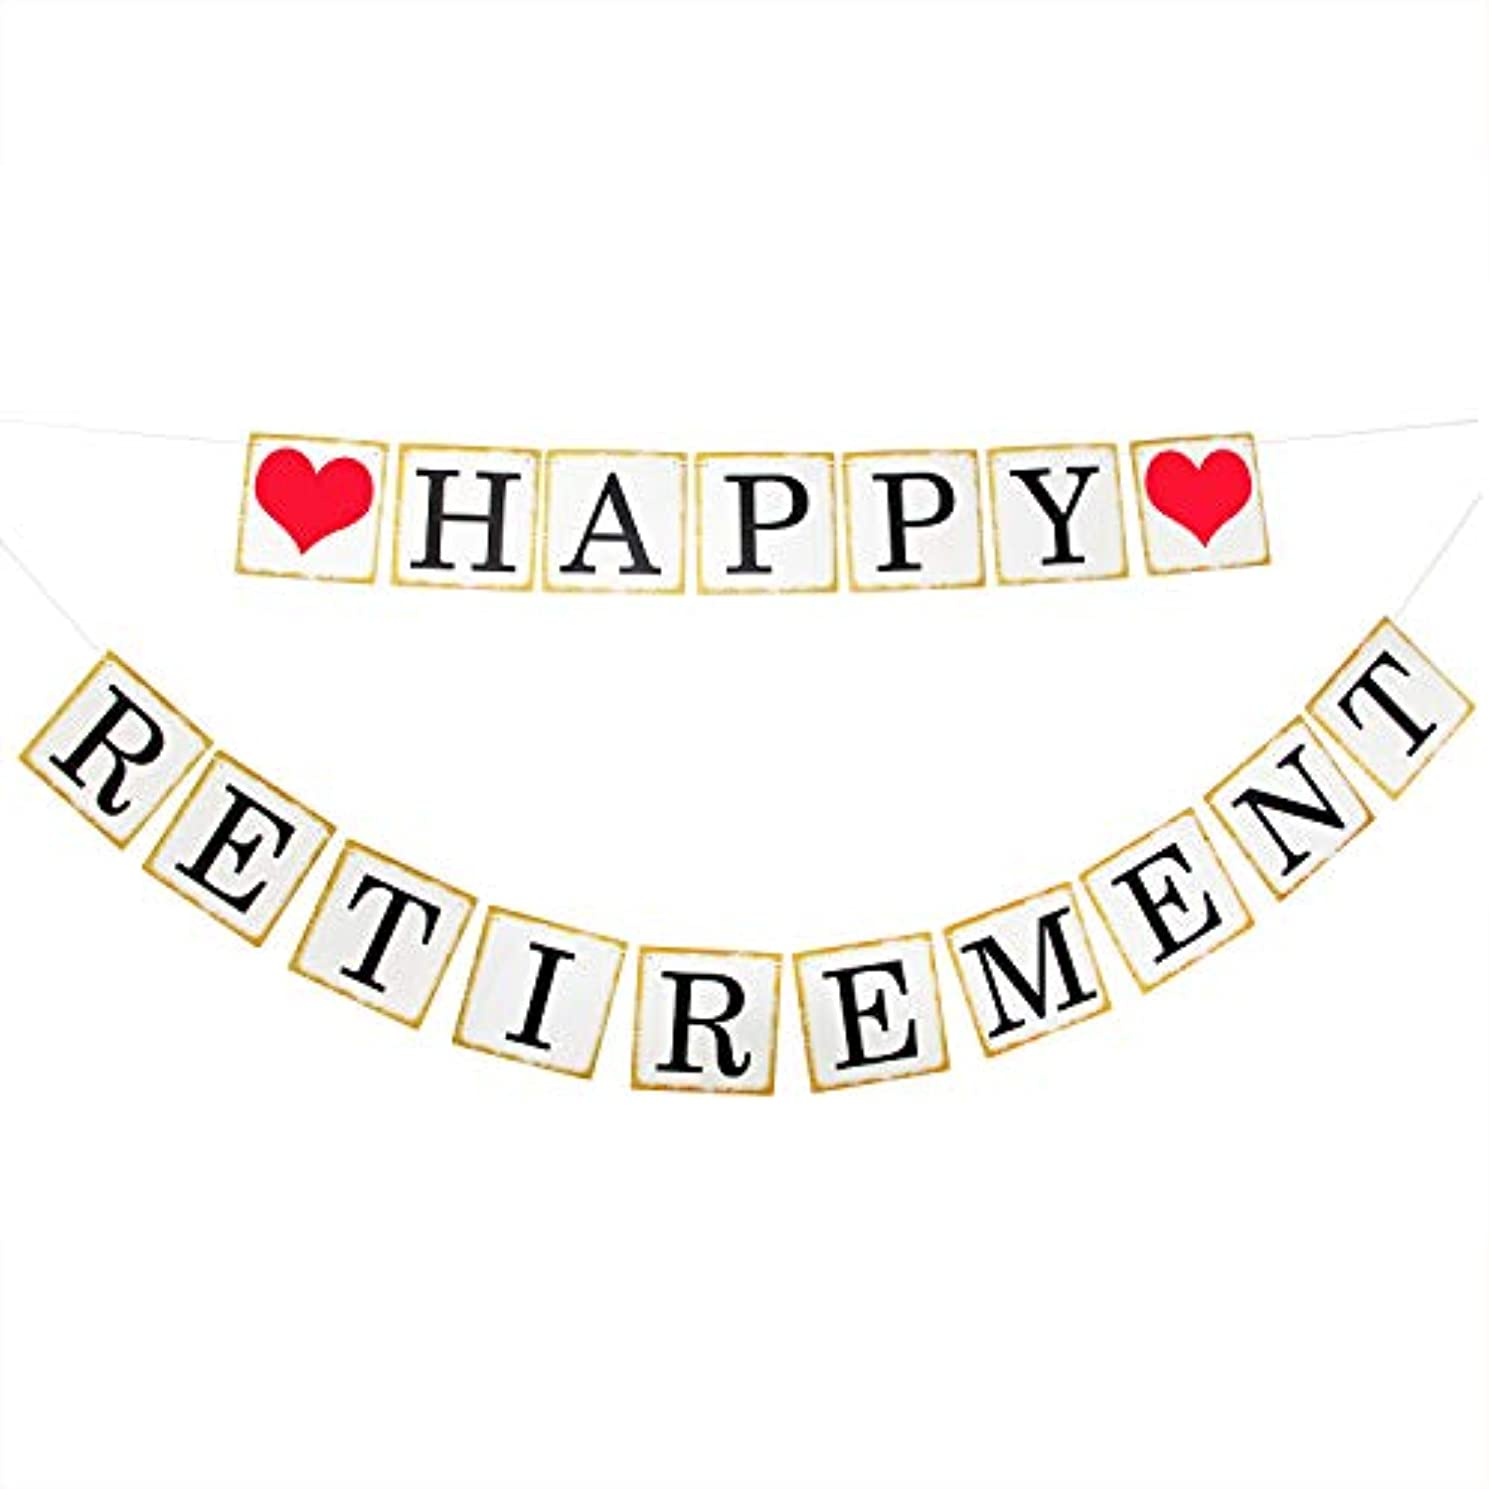 Happy Retirement Banner, Vintage Style Paper Sign Garland for Retirement Party